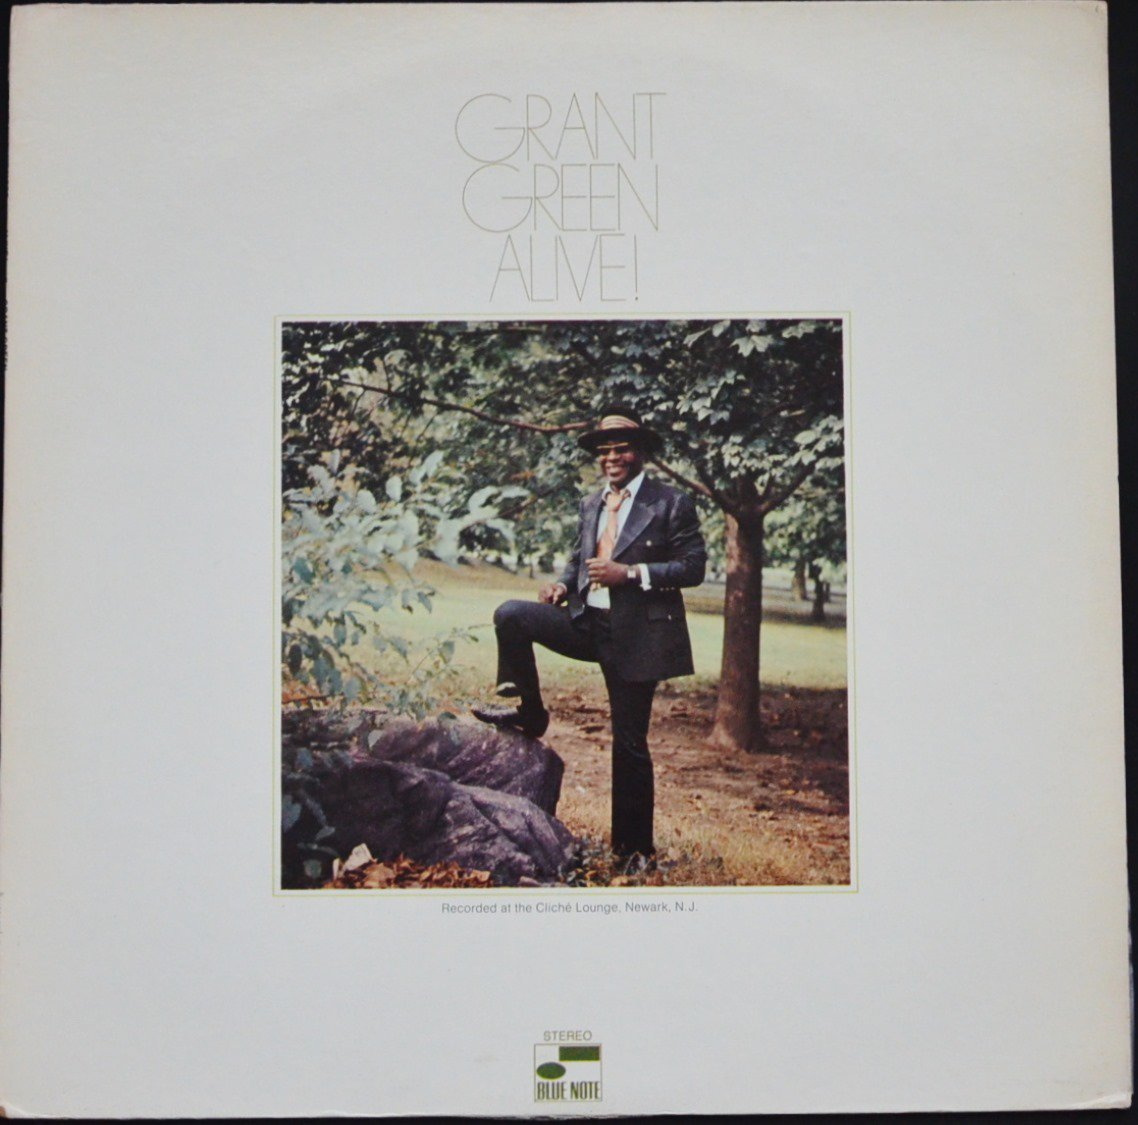 GRANT GREEN / ALIVE! (LP)